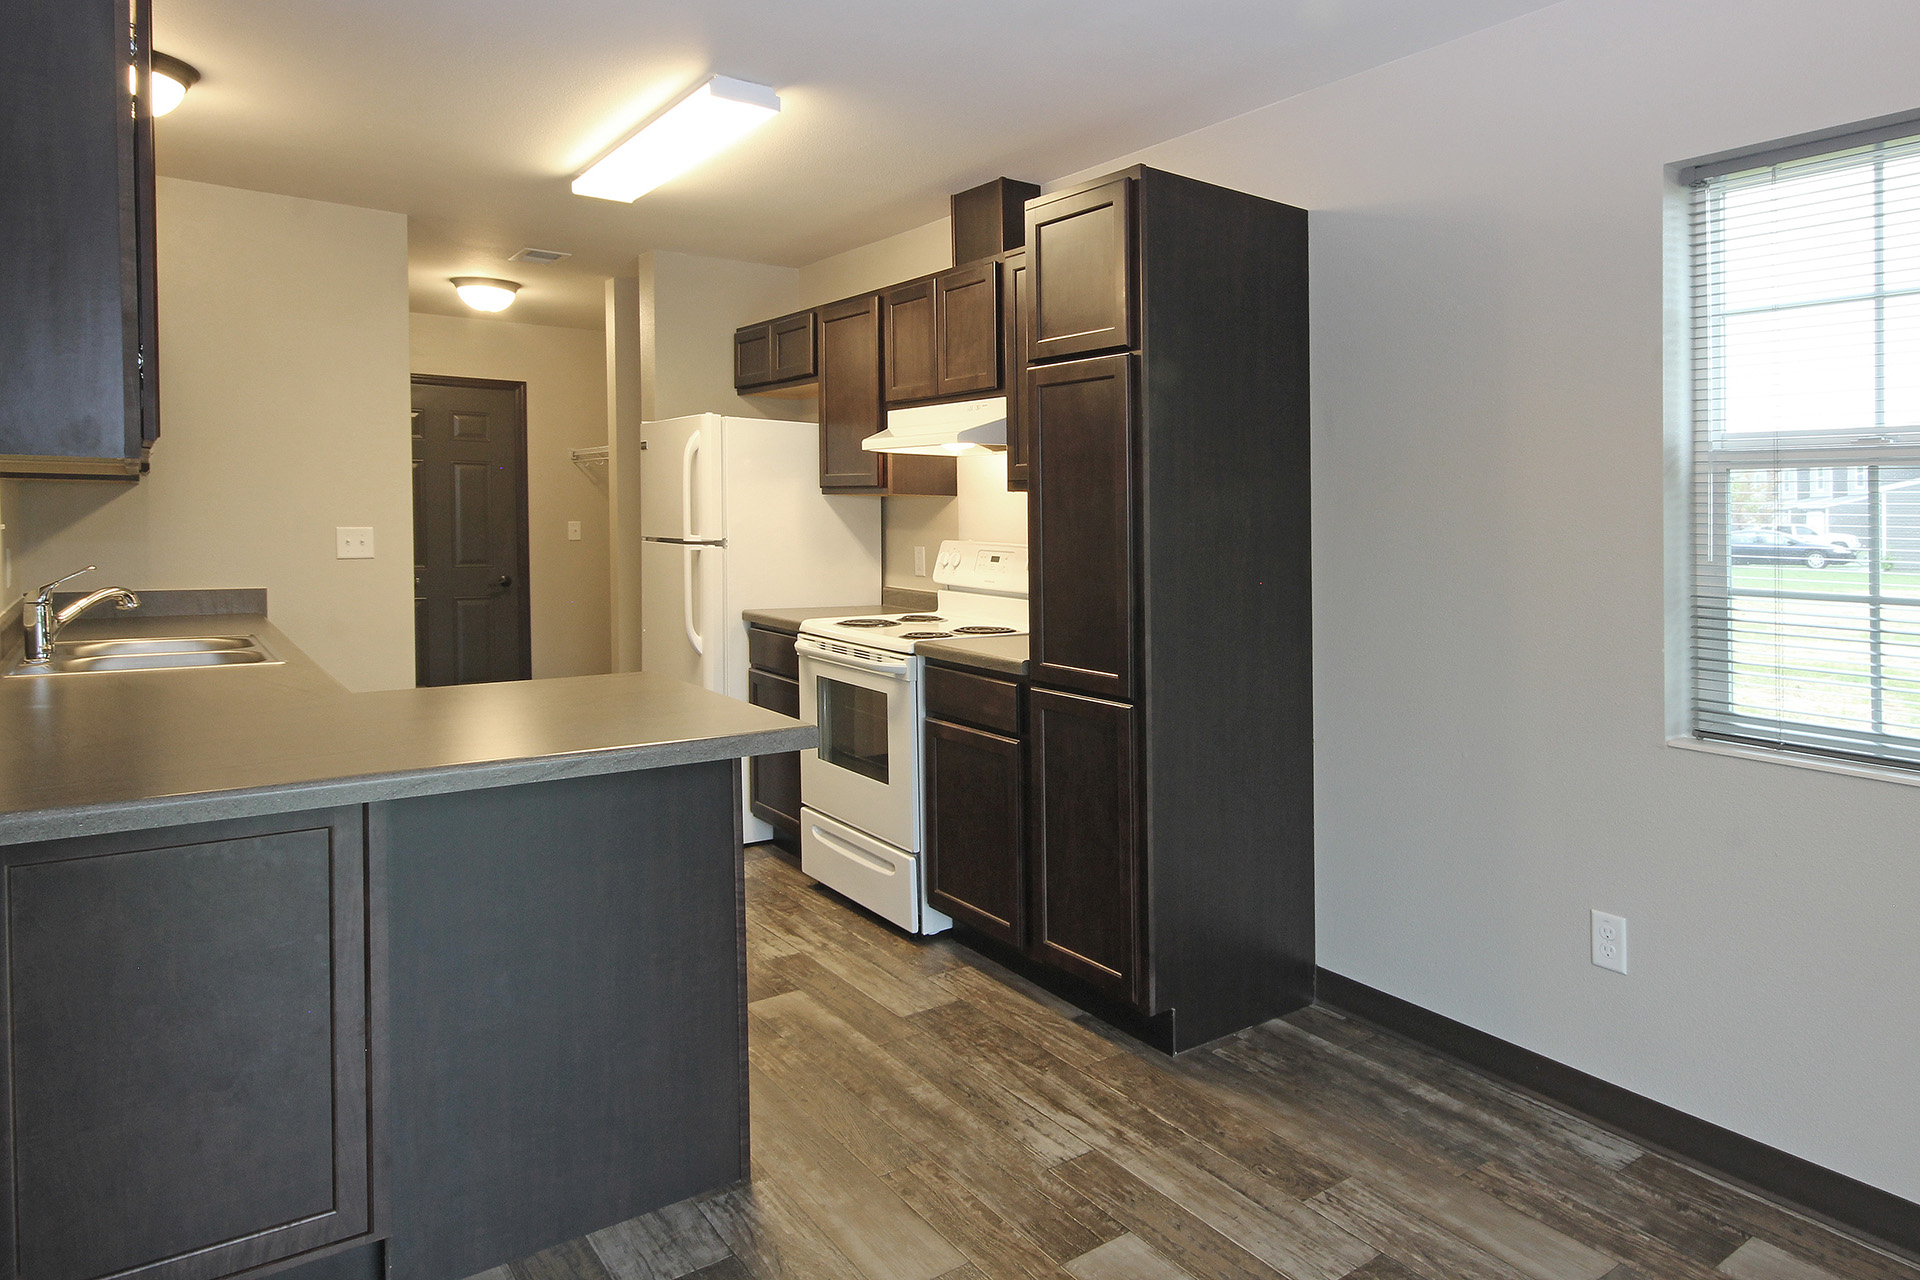 Image of River Pointe Townhomes